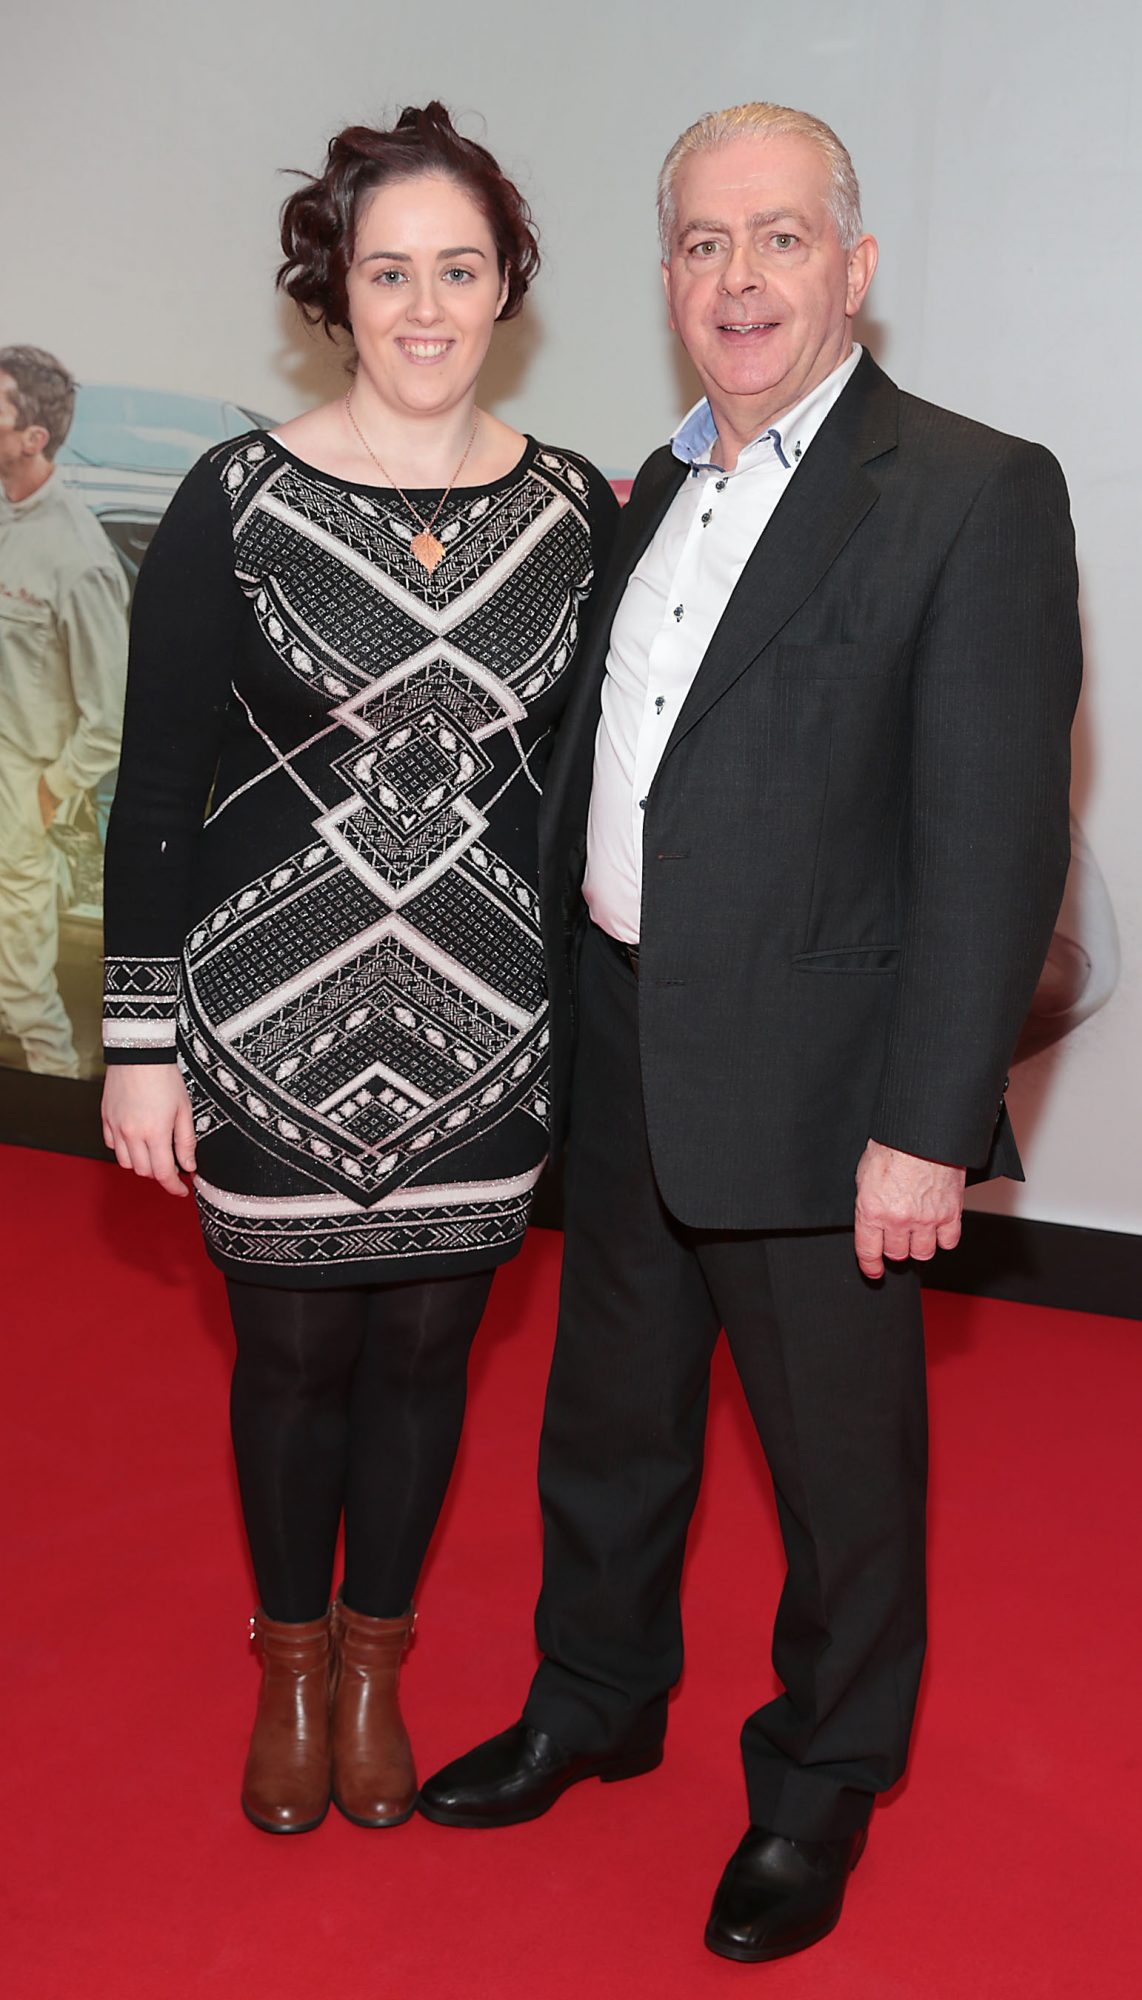 Sarah Eiffe and Gerry Eiffe pictured at the special preview screening of Le Mans '66 at Cineworld, Dublin. Photo: Brian McEvoy.